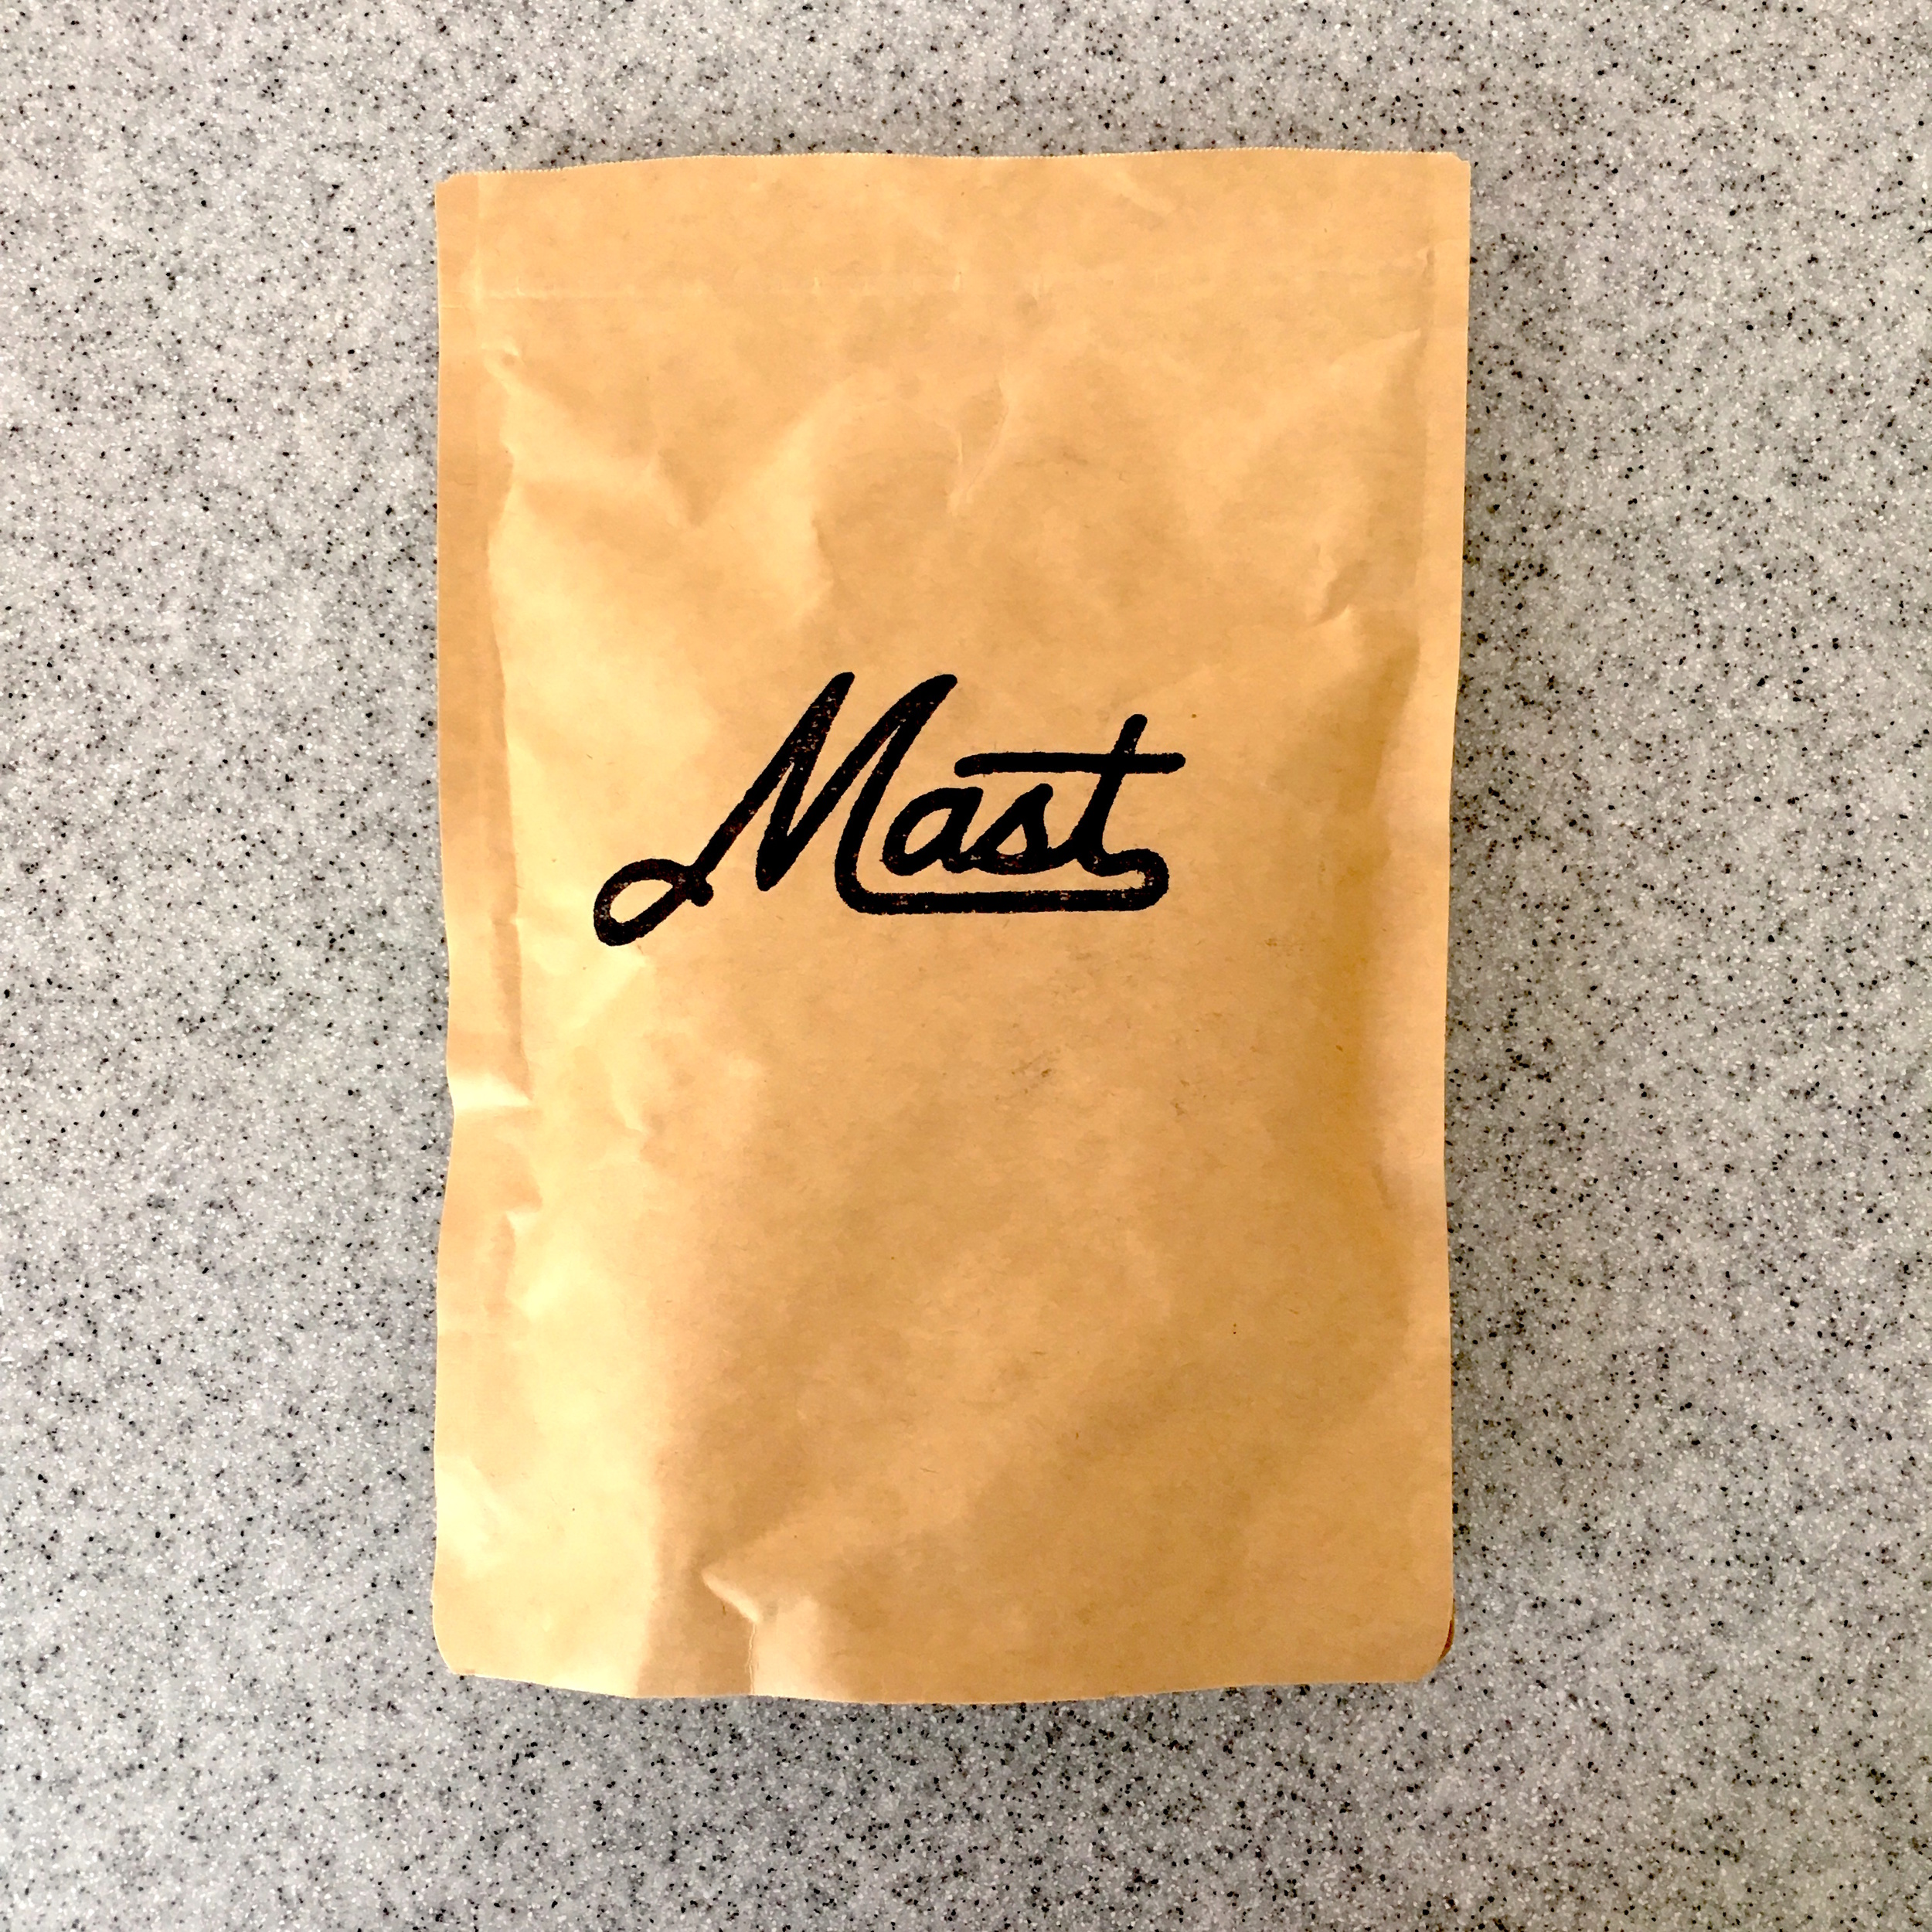 Mast Coffee Co.: Rocklin, California